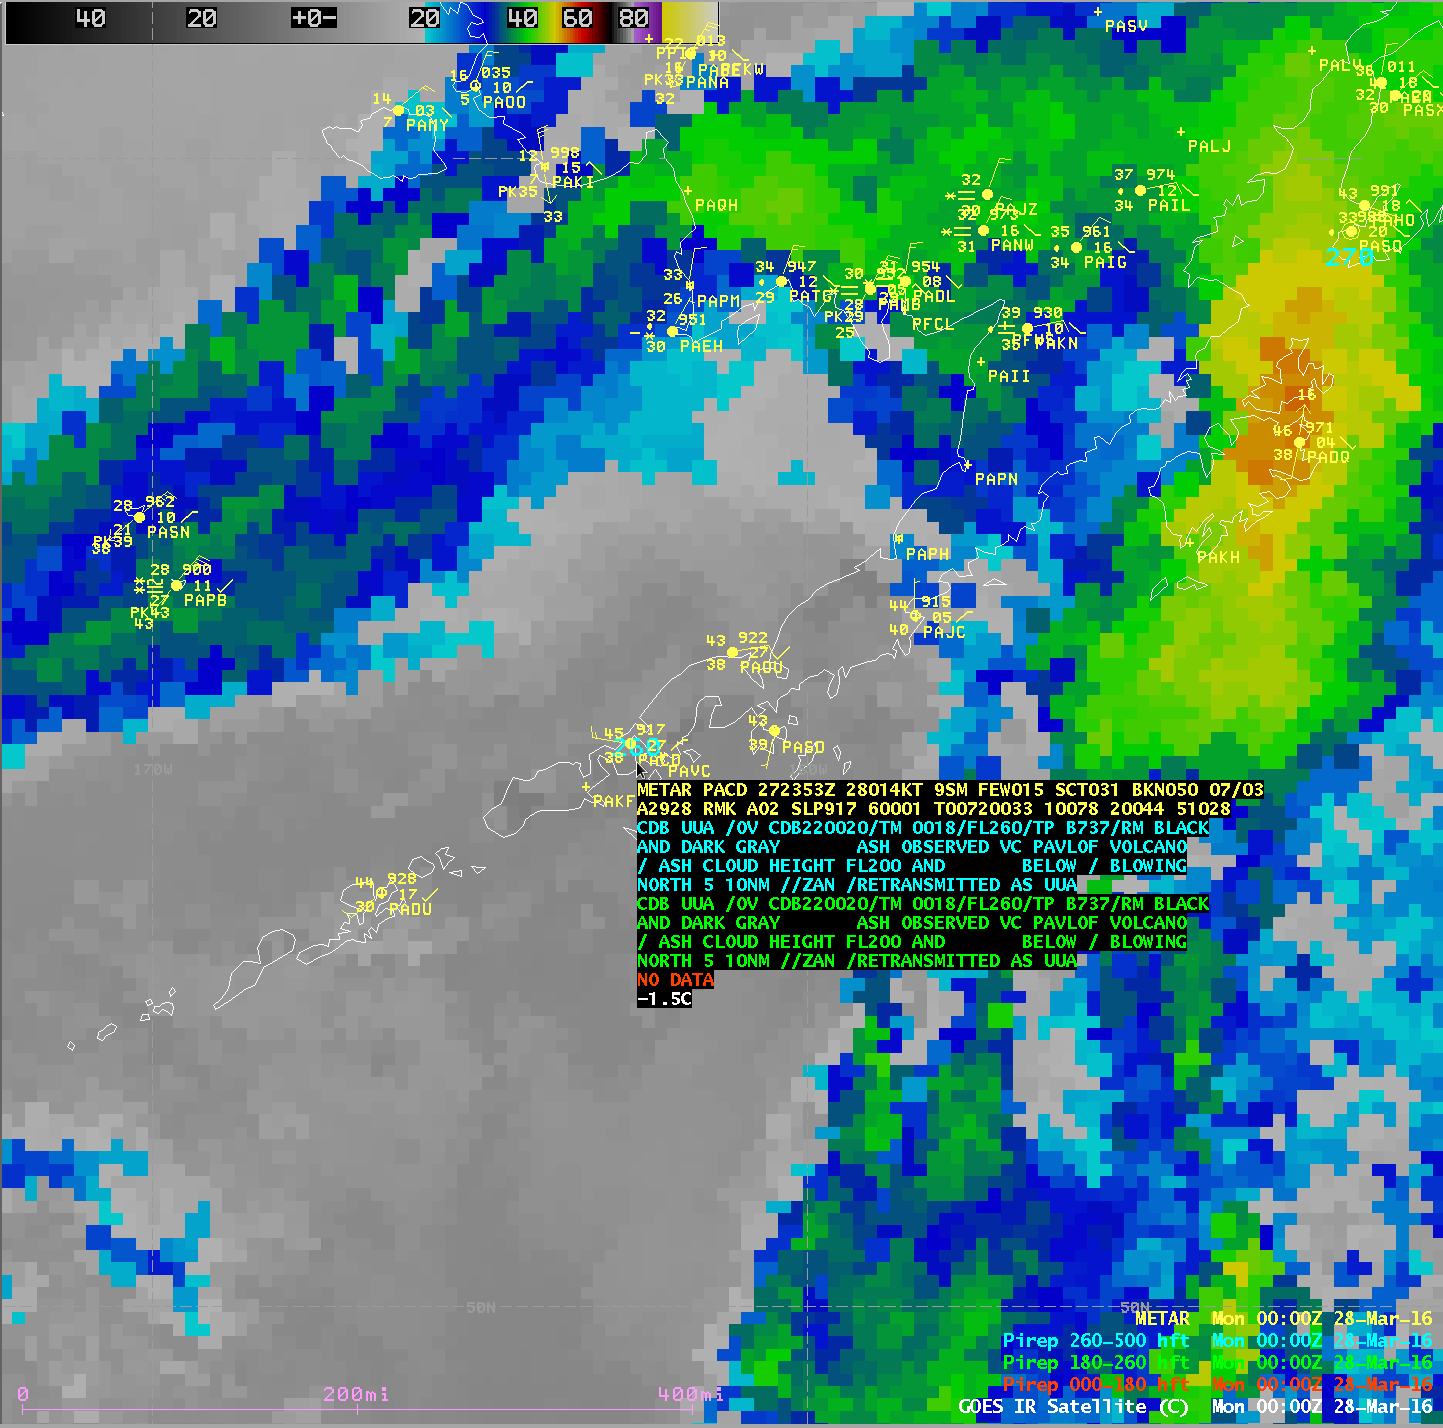 GOES-15 Infrared Window (10.7 um) image, with METAR surface reports and Pilot reports [click to enlarge]